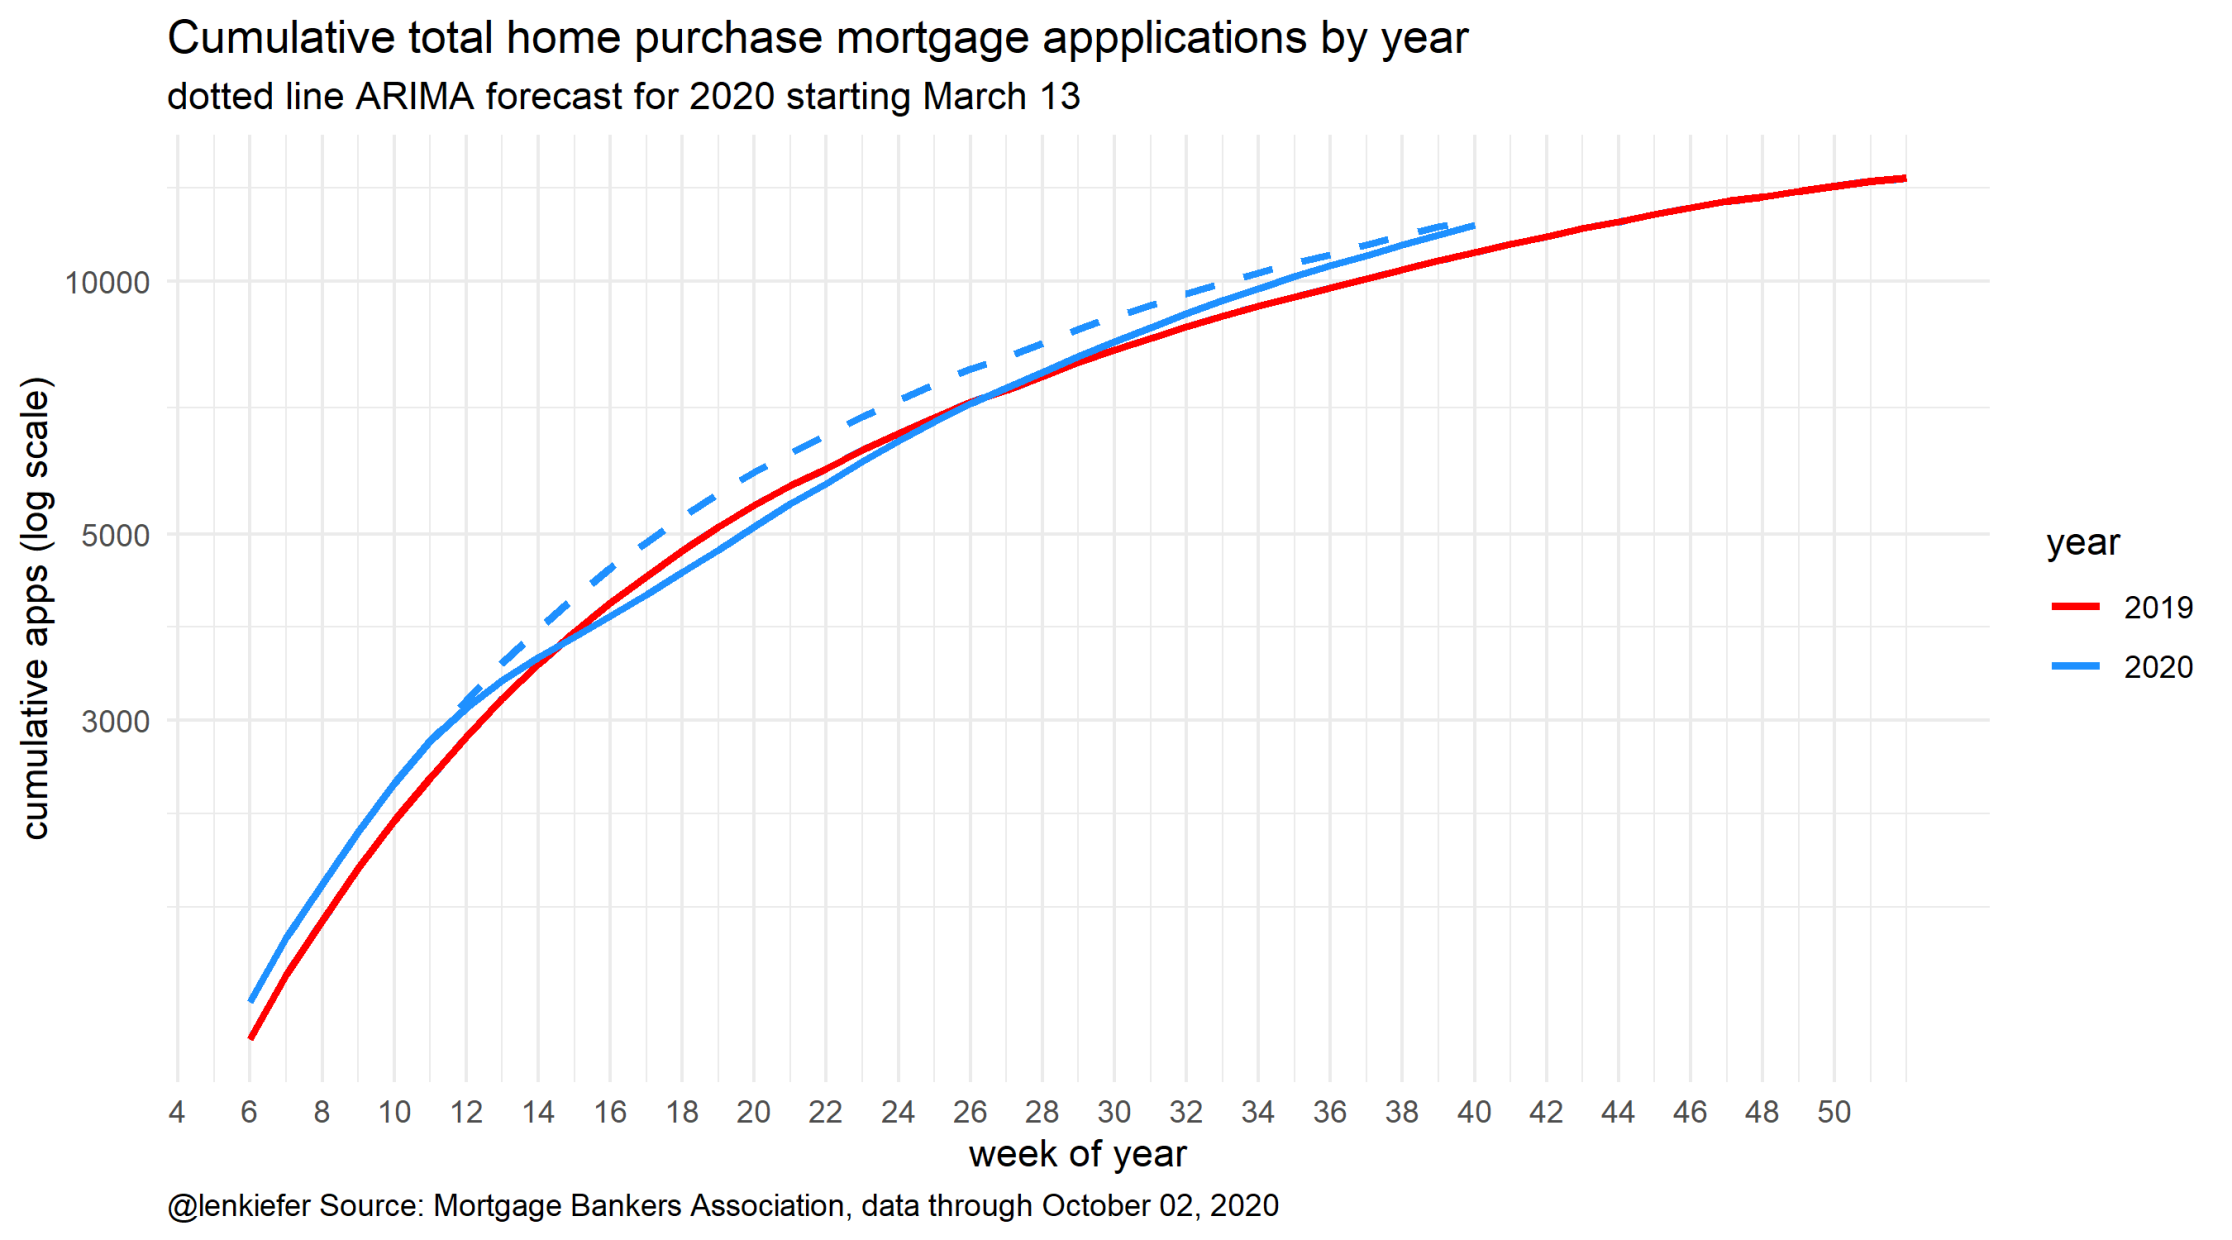 Chart of cumulative home purchase mortgage applications, 2019 and 2020 compared to pre-pandemic 2020 trend